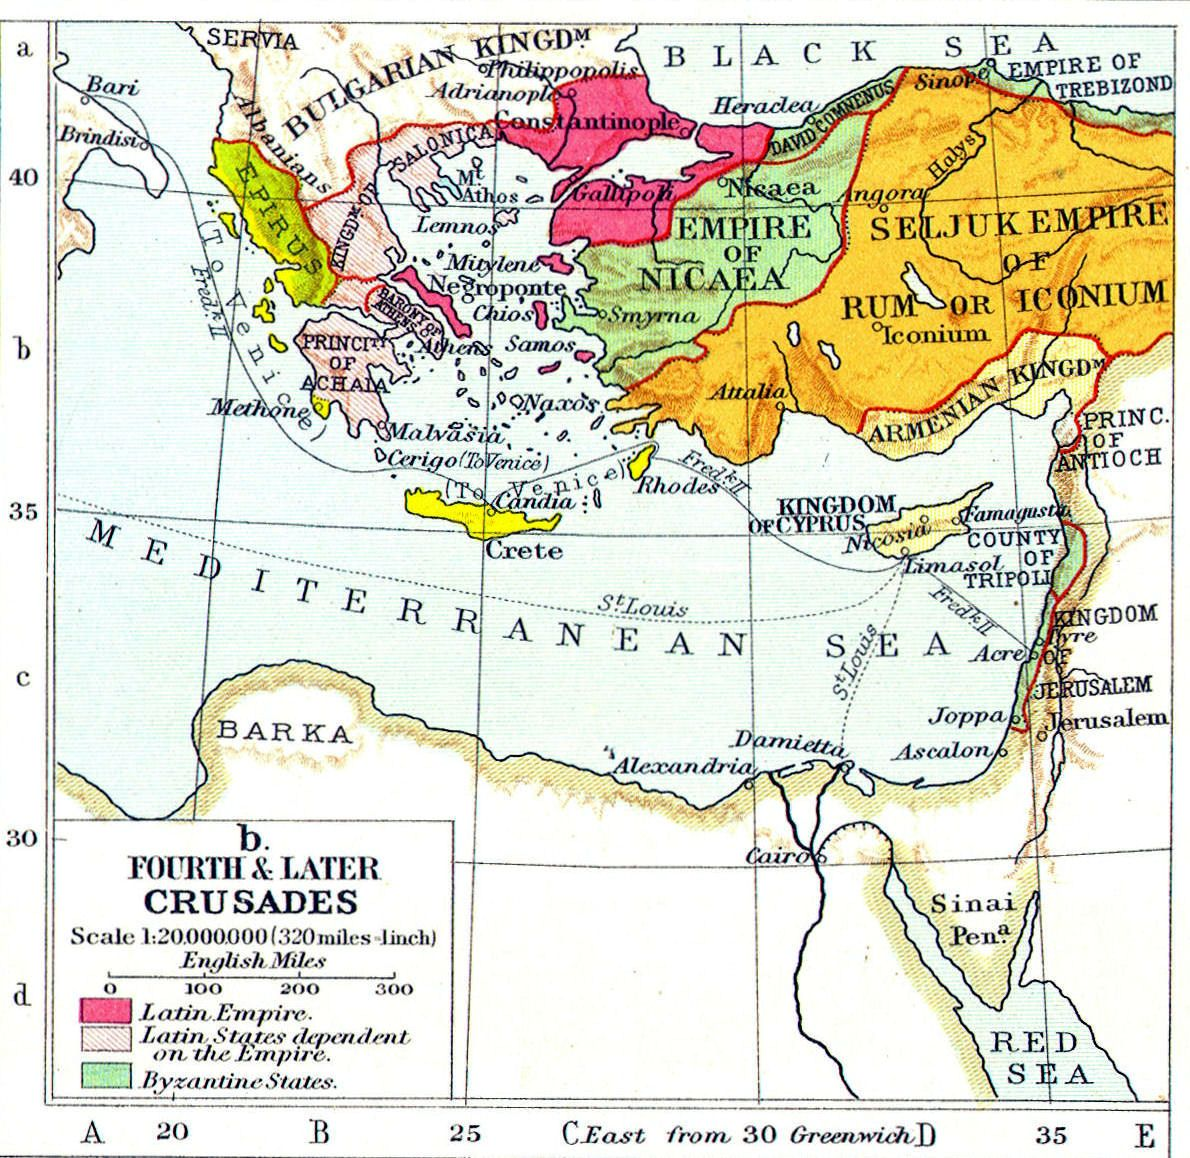 Fourth And Later Crusades